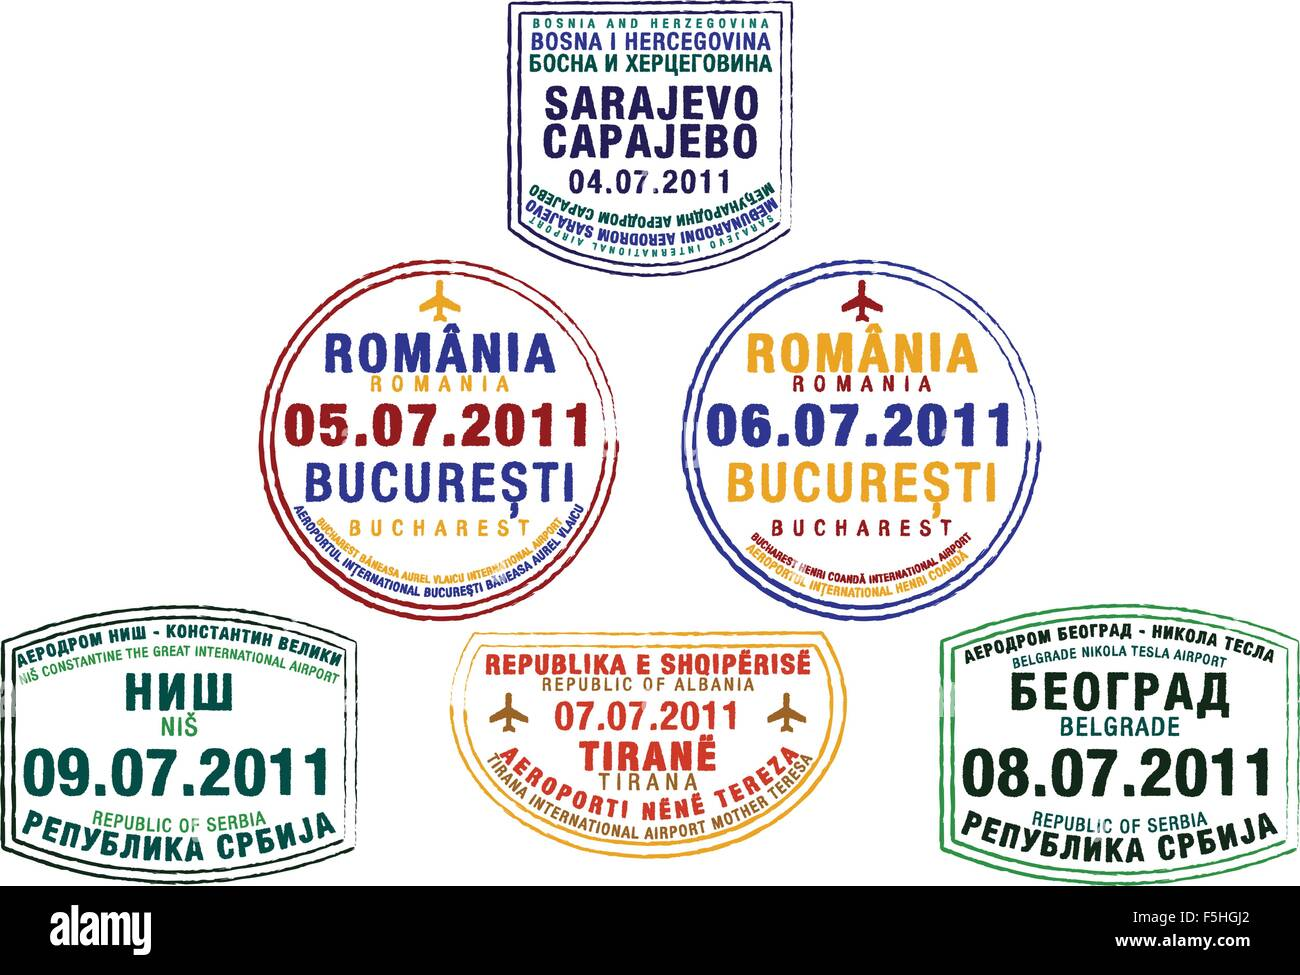 Passport stamps from Bosnia and Herzegovina, Romania, Serbia and Albania in vector format. - Stock Vector